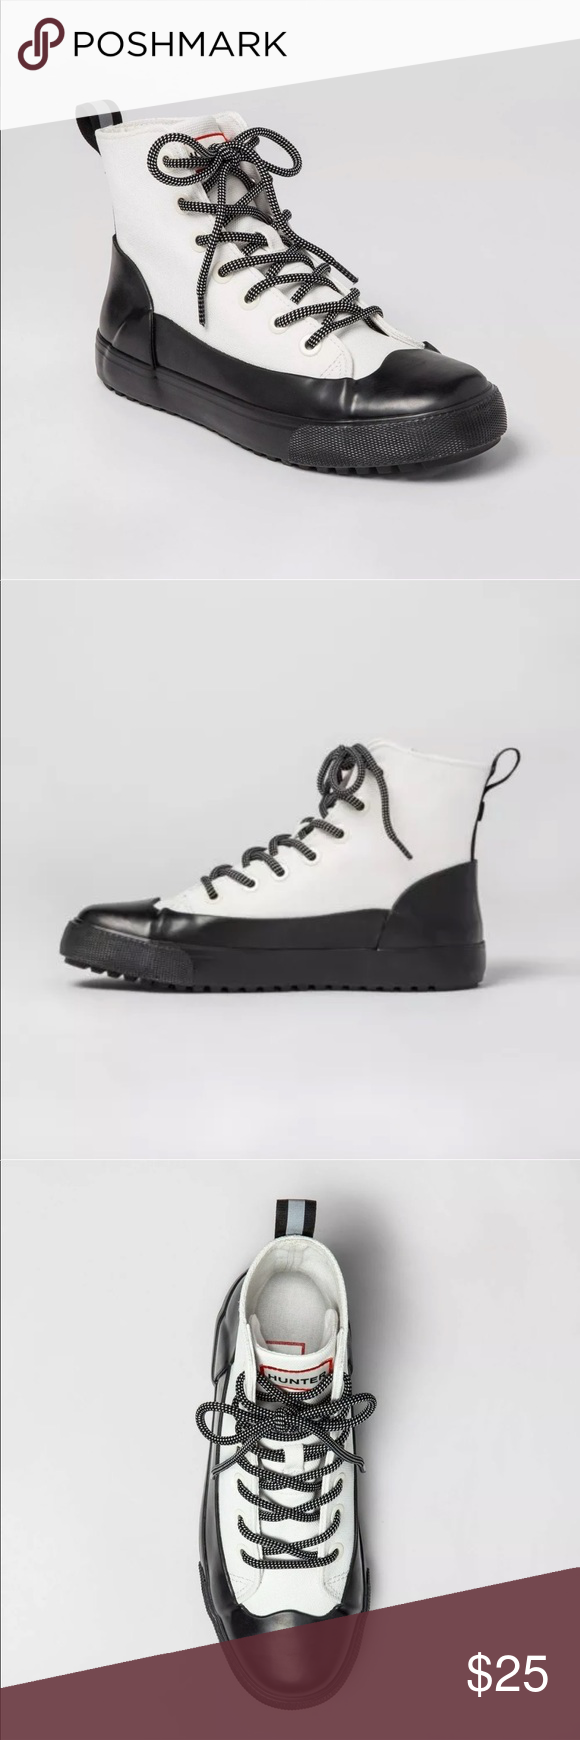 Hunter for Target Canvas Sneakers White Black Unisex Water Repellent NEW Various